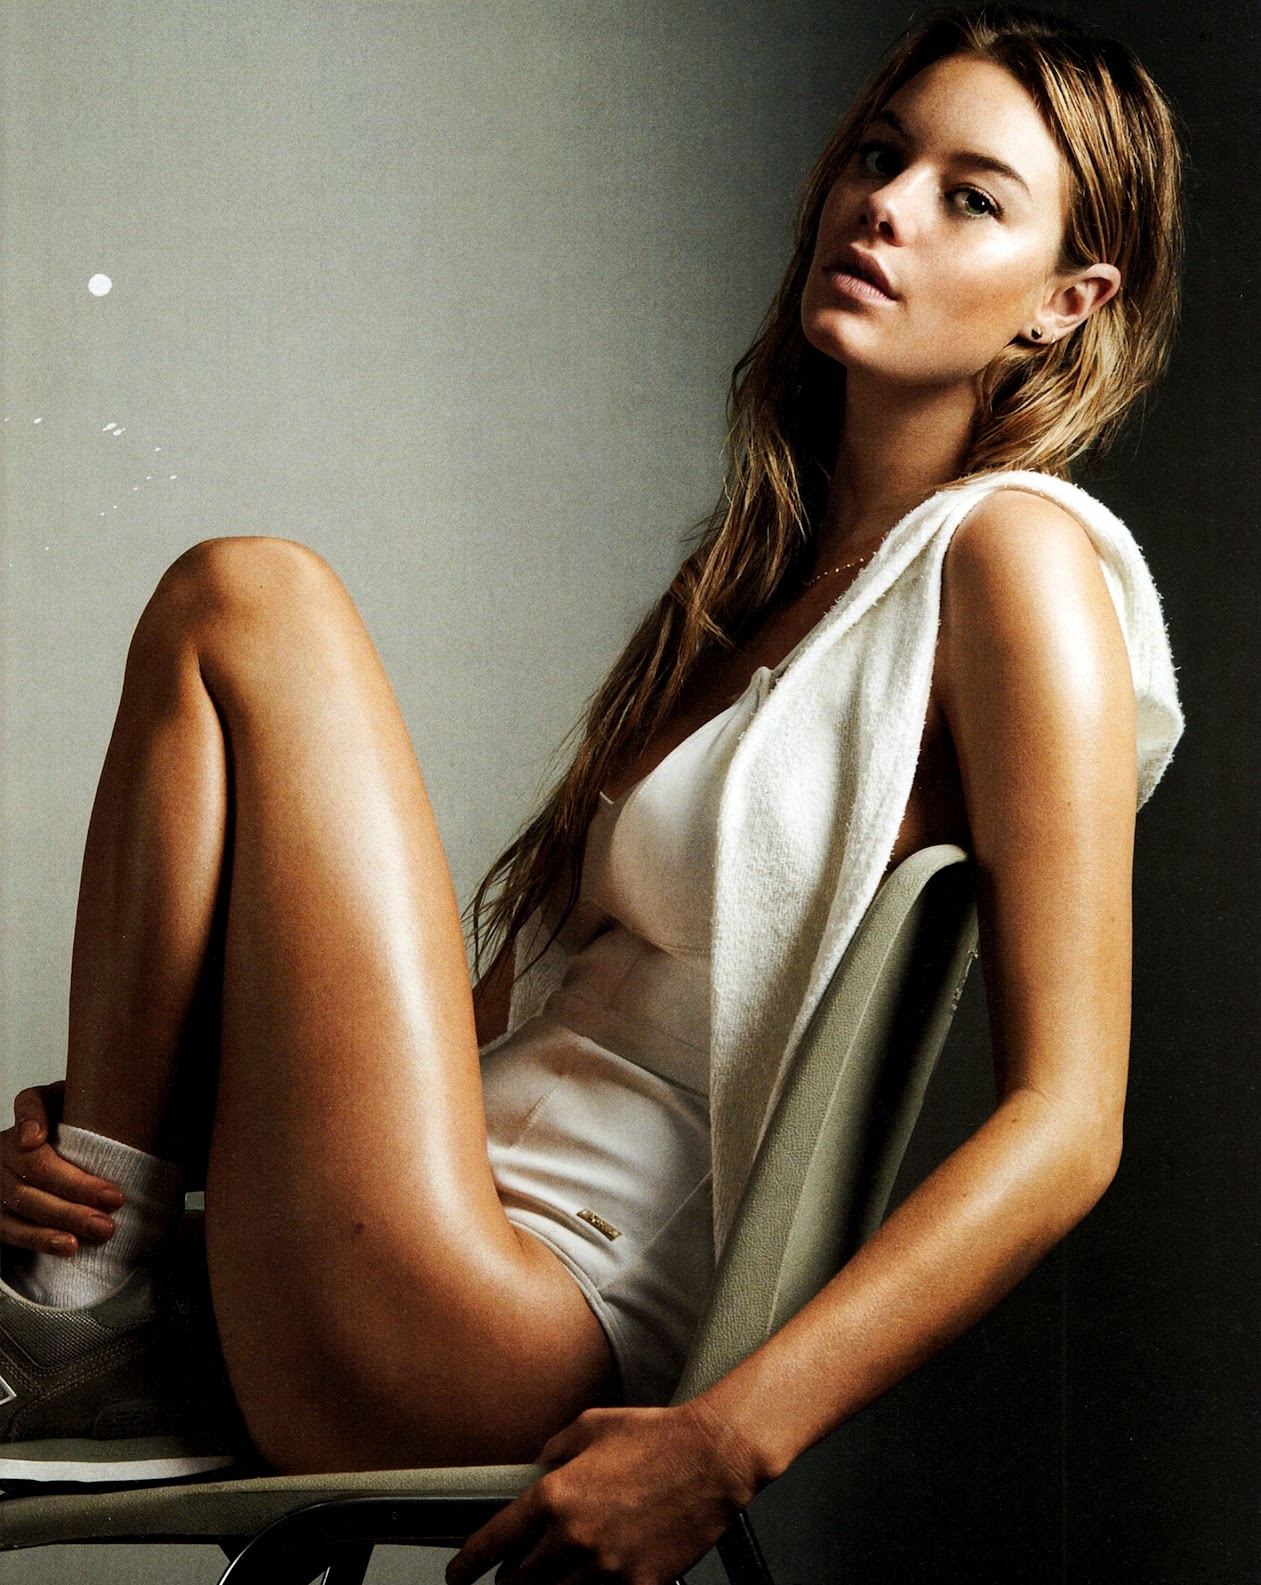 camille rowe by charlotte wales